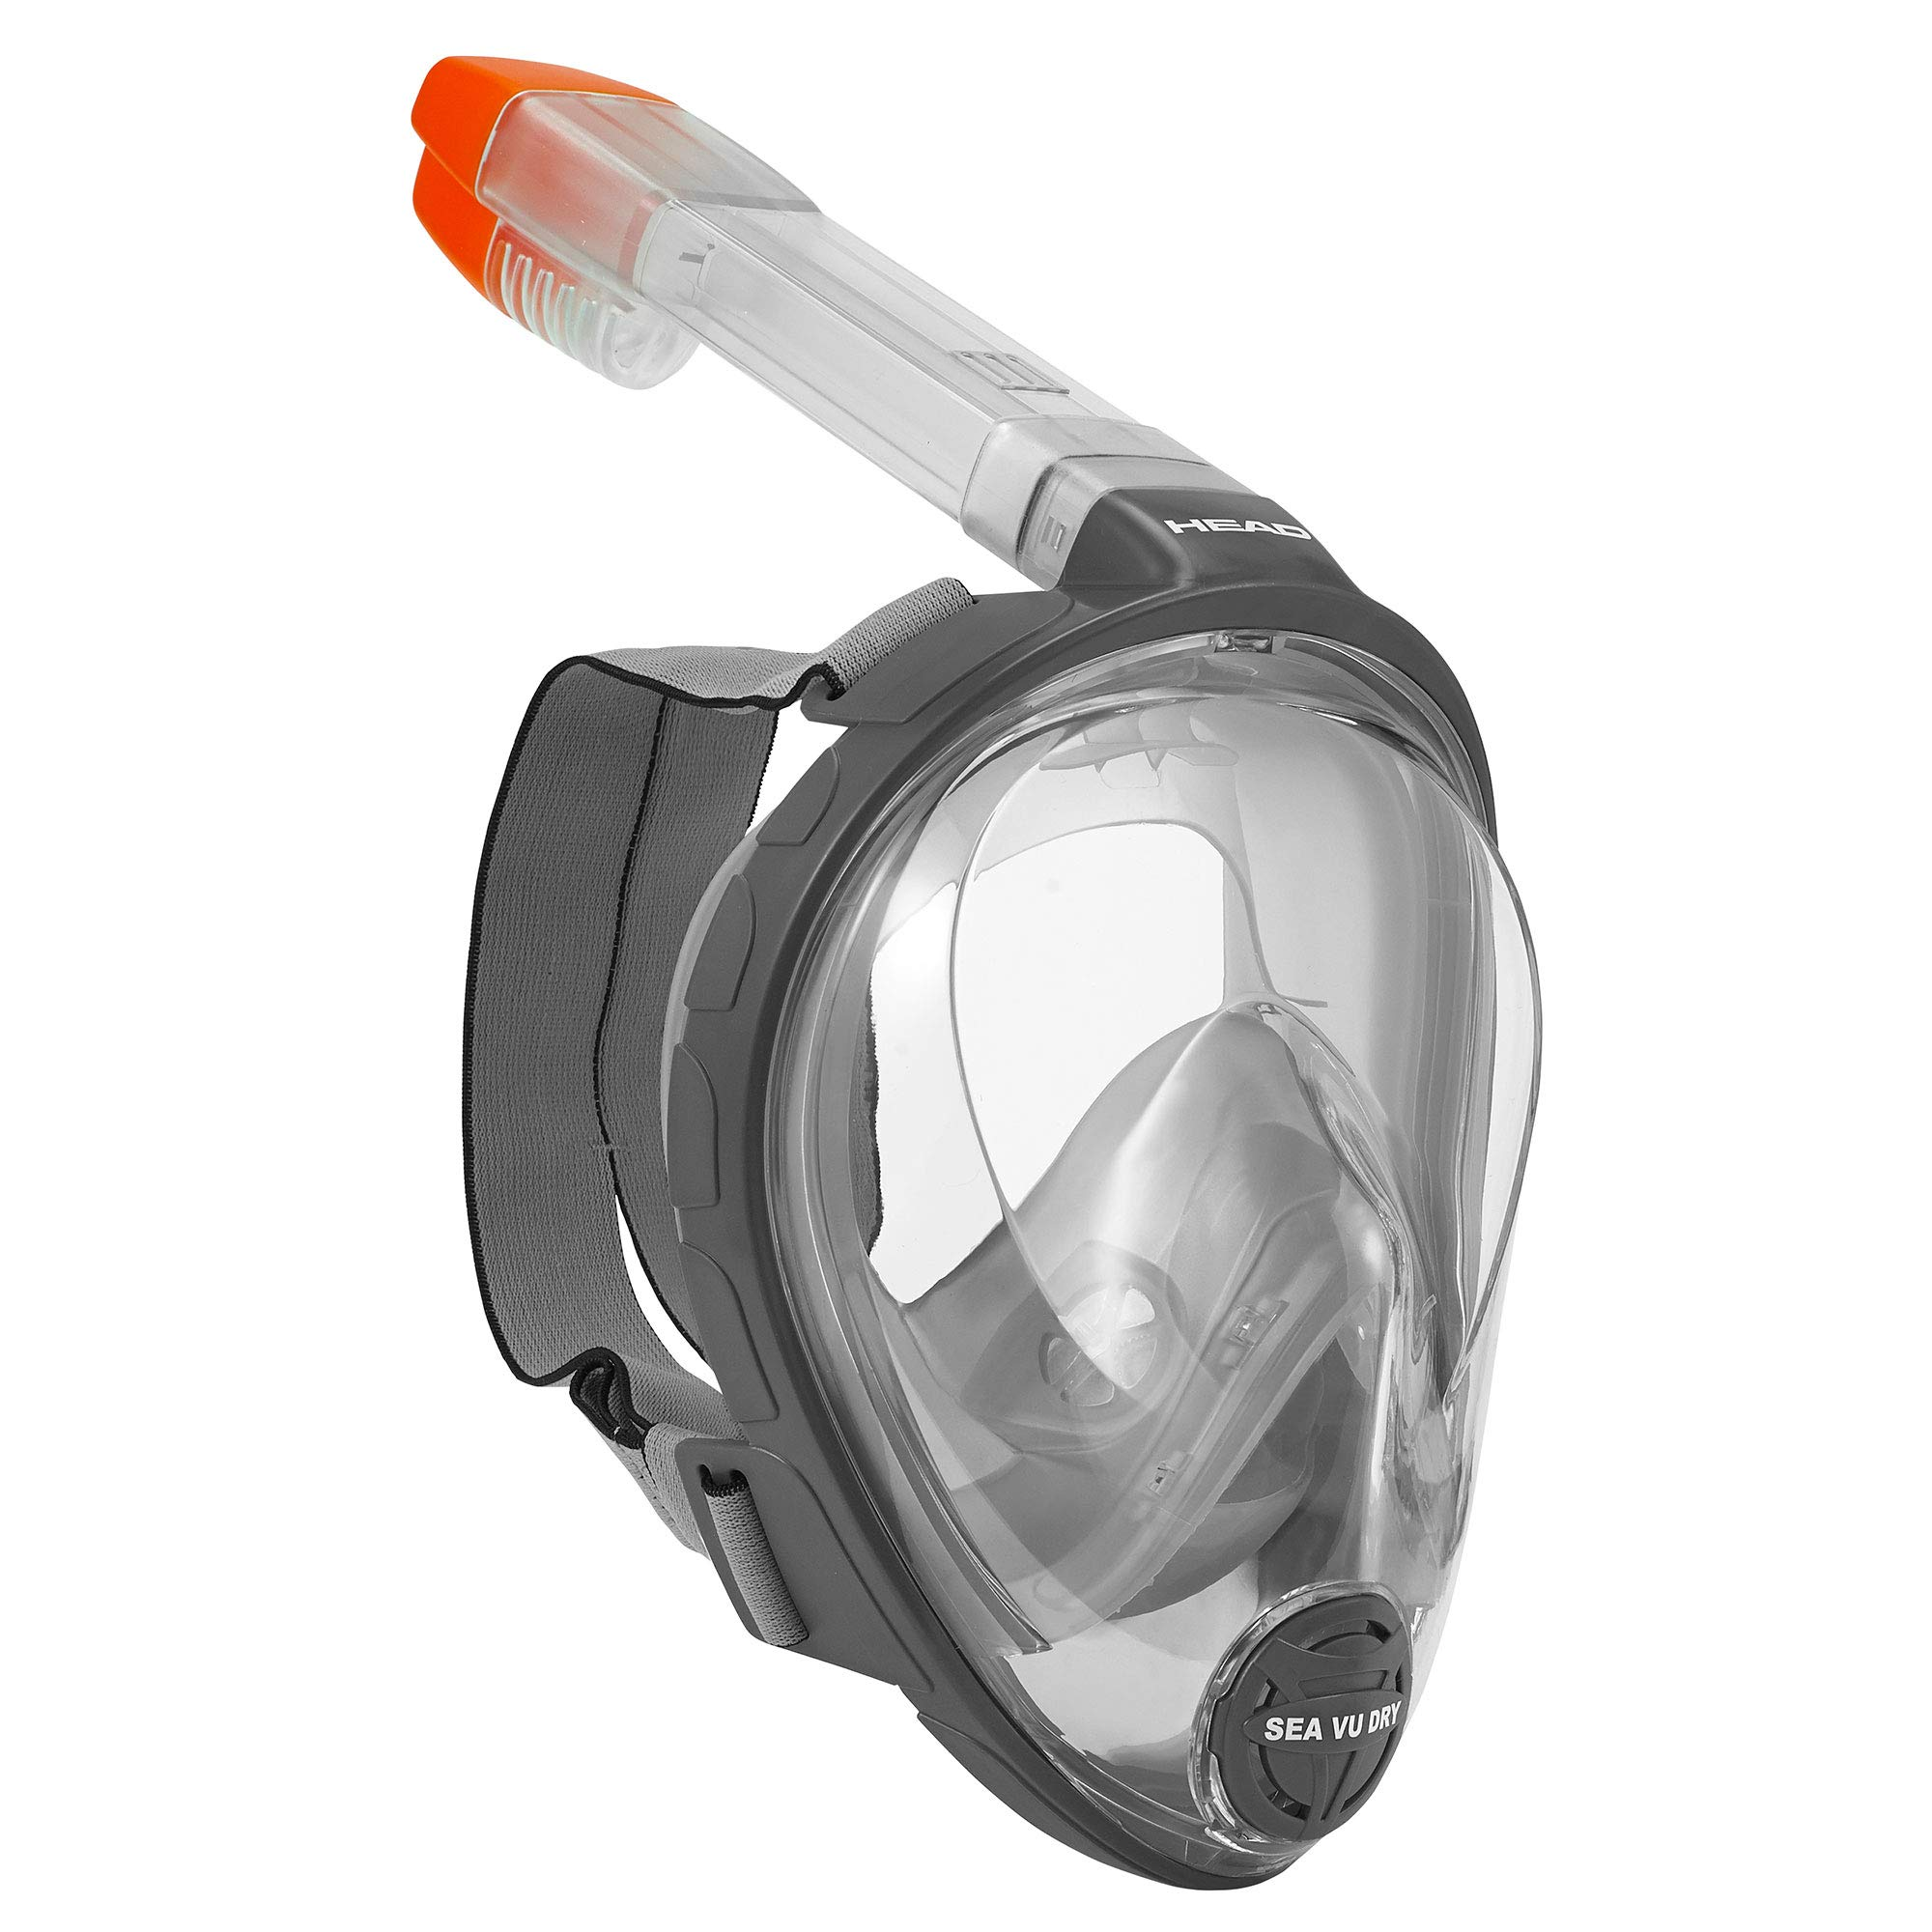 Mares Head Sea Vu Dry Full Face Snorkeling Mask, Large/X-Large